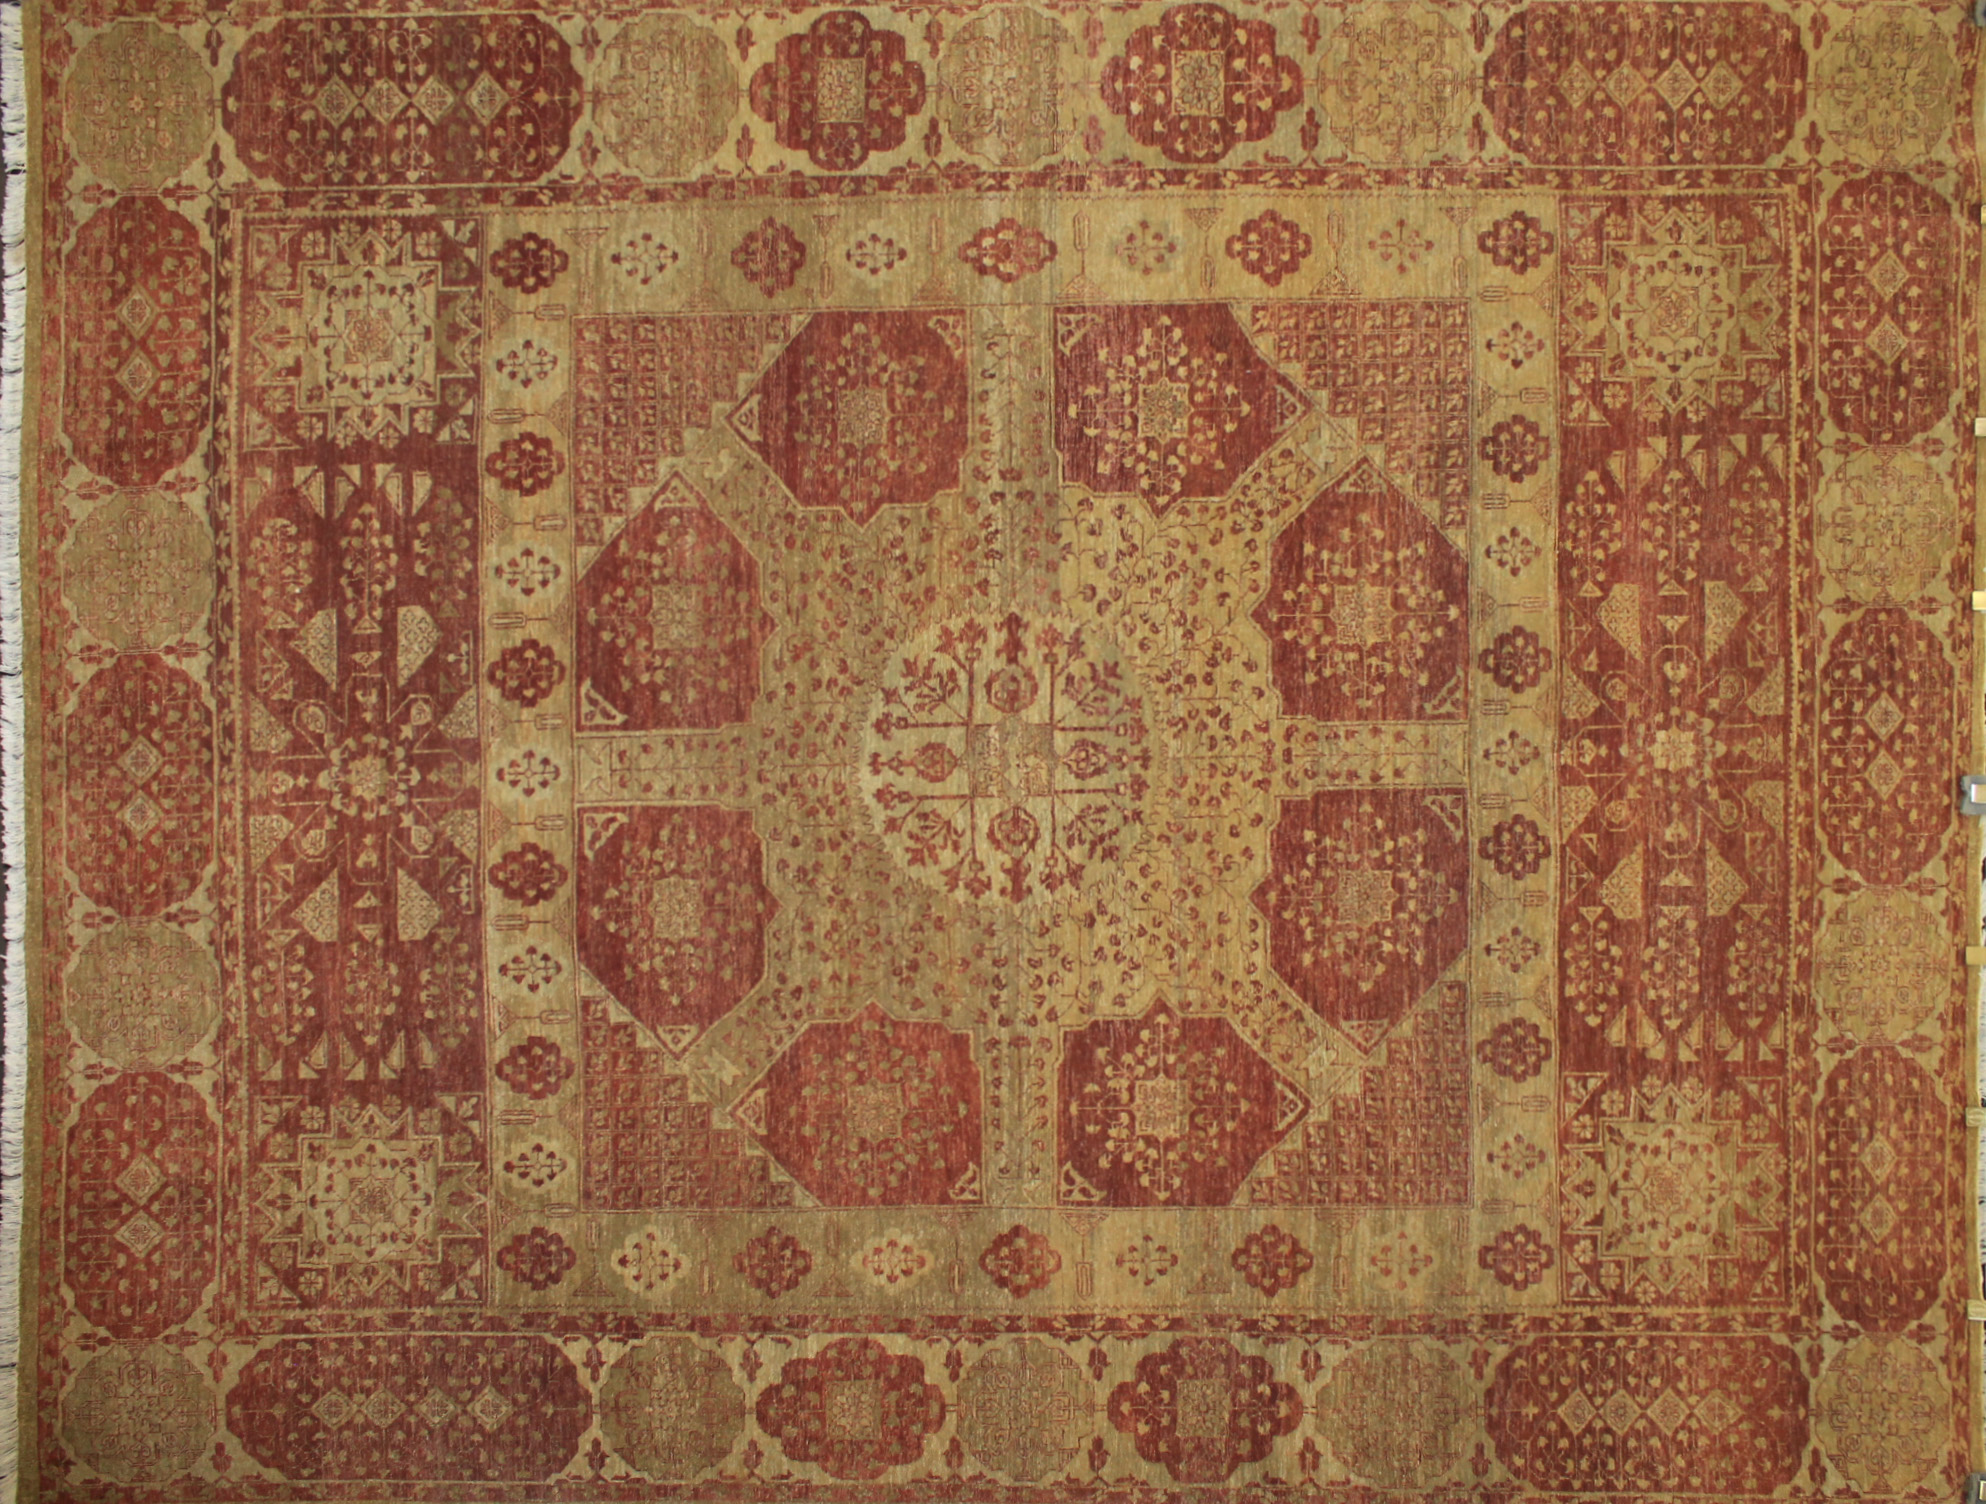 9x12 Antique Revival Hand Knotted Wool Area Rug - MR9034